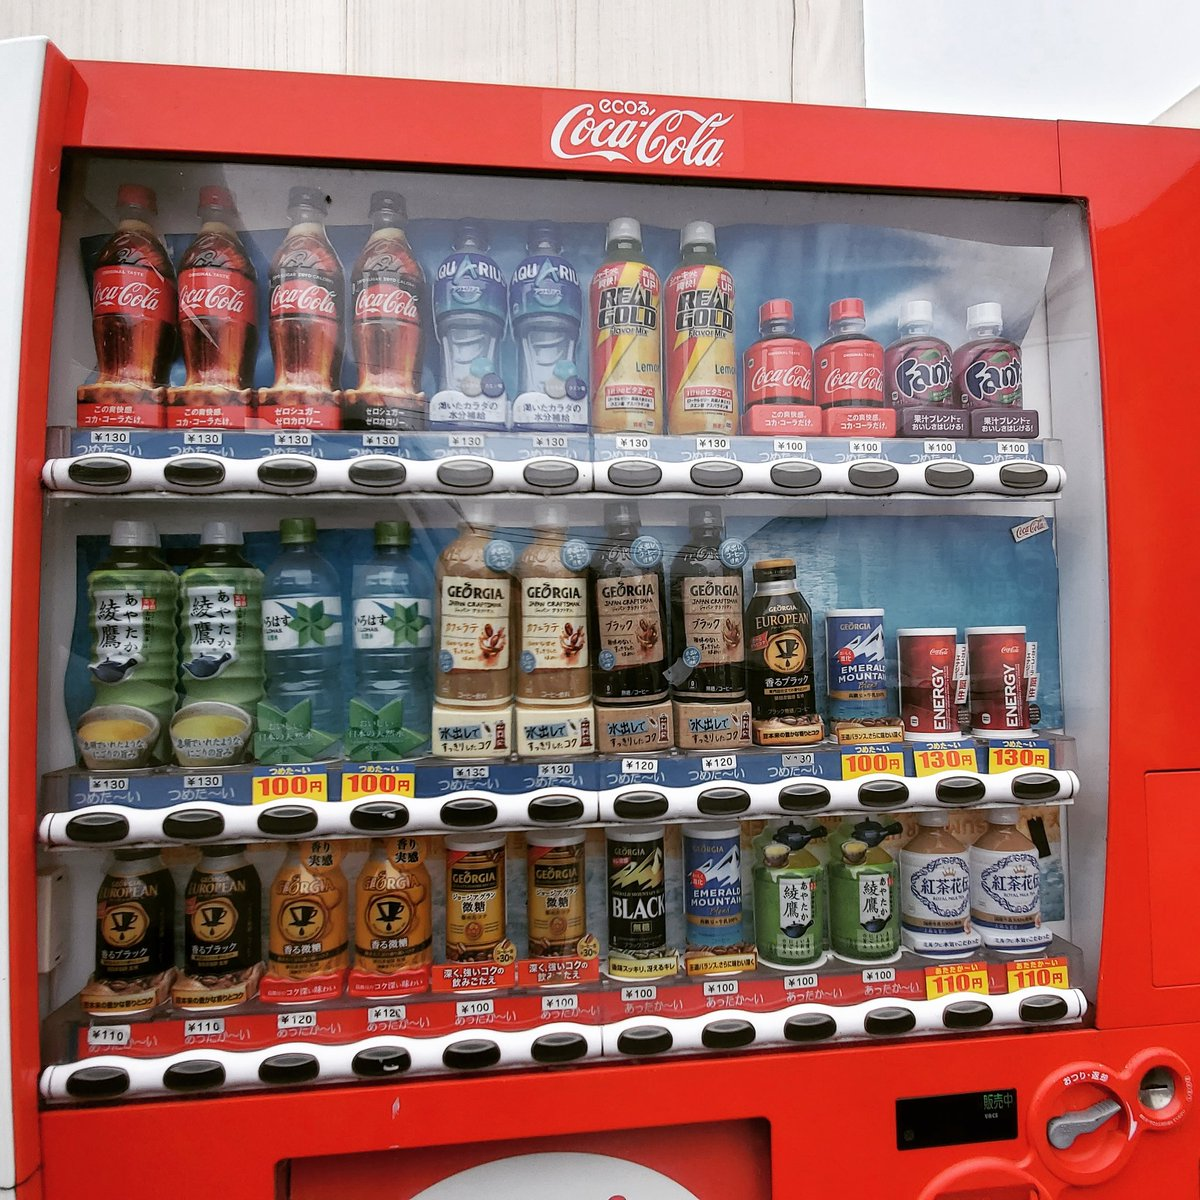 You can find vending machines everywhere in Japan. Many different kinds of products can be purchased from Japanese vending machines. #japan #travel #love #beautiful #Likeforlike  #cute #followme #picoftheday #follow #nature  #vendingmachinespic.twitter.com/EYIVRM3BDq